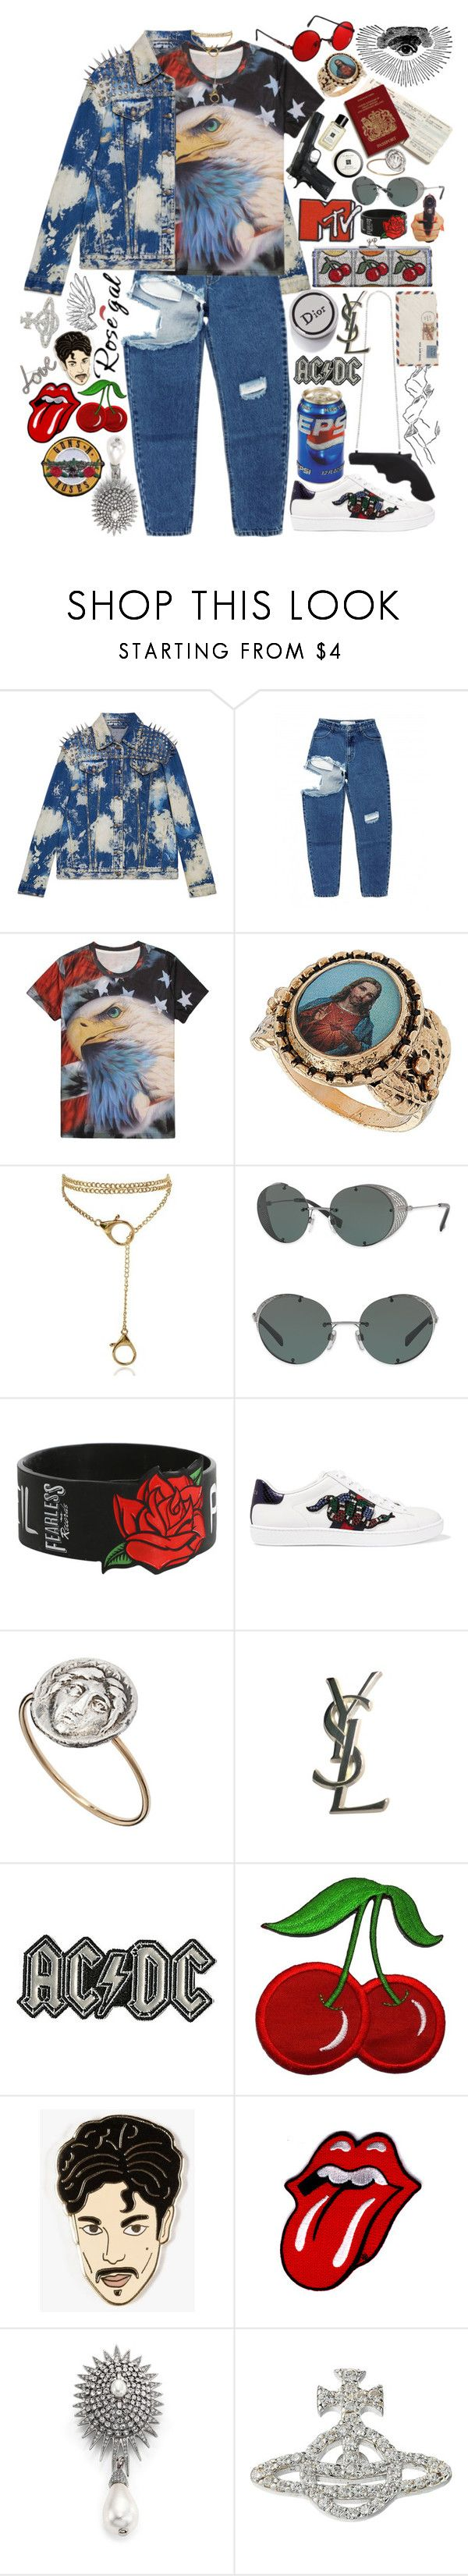 """Rosegal: Flag Print T-shirt Americana"" by styling-w-mabel ❤ liked on Polyvore featuring Gucci, Valentino, Hot Topic, Laura Lee, Yves Saint Laurent, Georgia Perry, Oscar de la Renta, Vivienne Westwood, Lanvin and men's fashion"